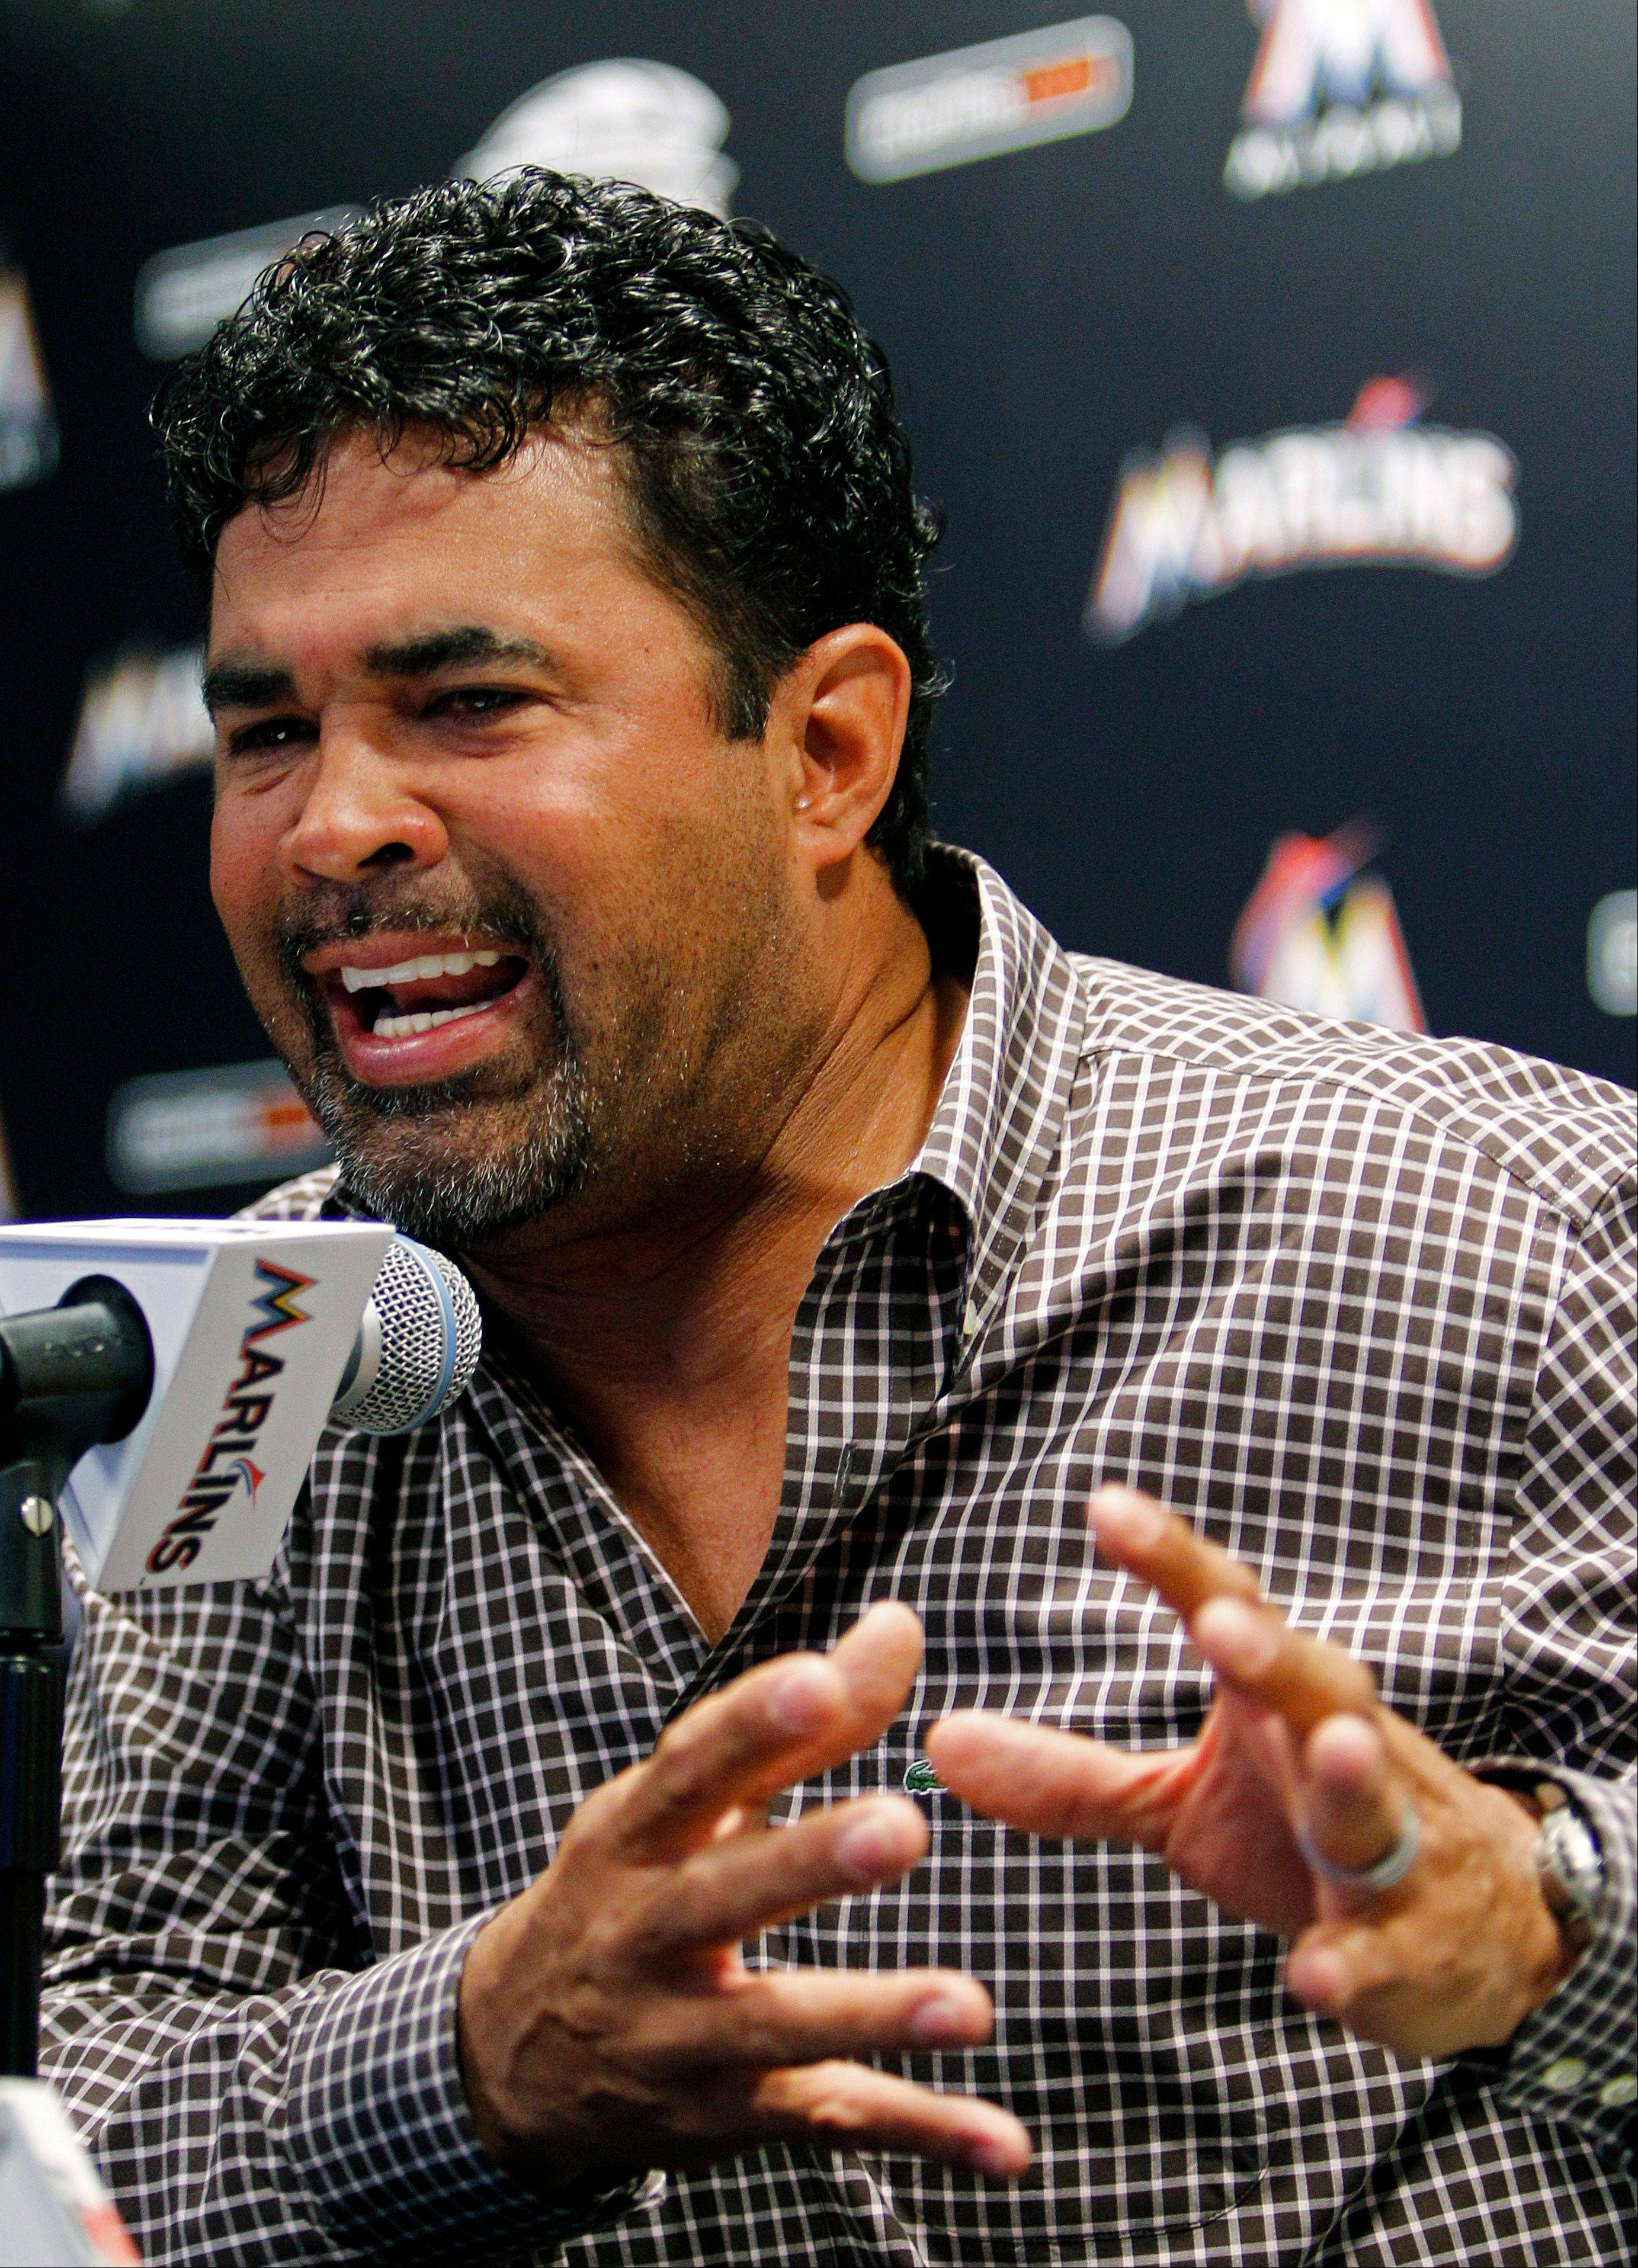 Miami Marlins manager Ozzie Guillen gestures at a news conference at the Marlins Stadium in Miami on Tuesday. Guillen was suspended for five games Tuesday because of his comments about Fidel Castro.